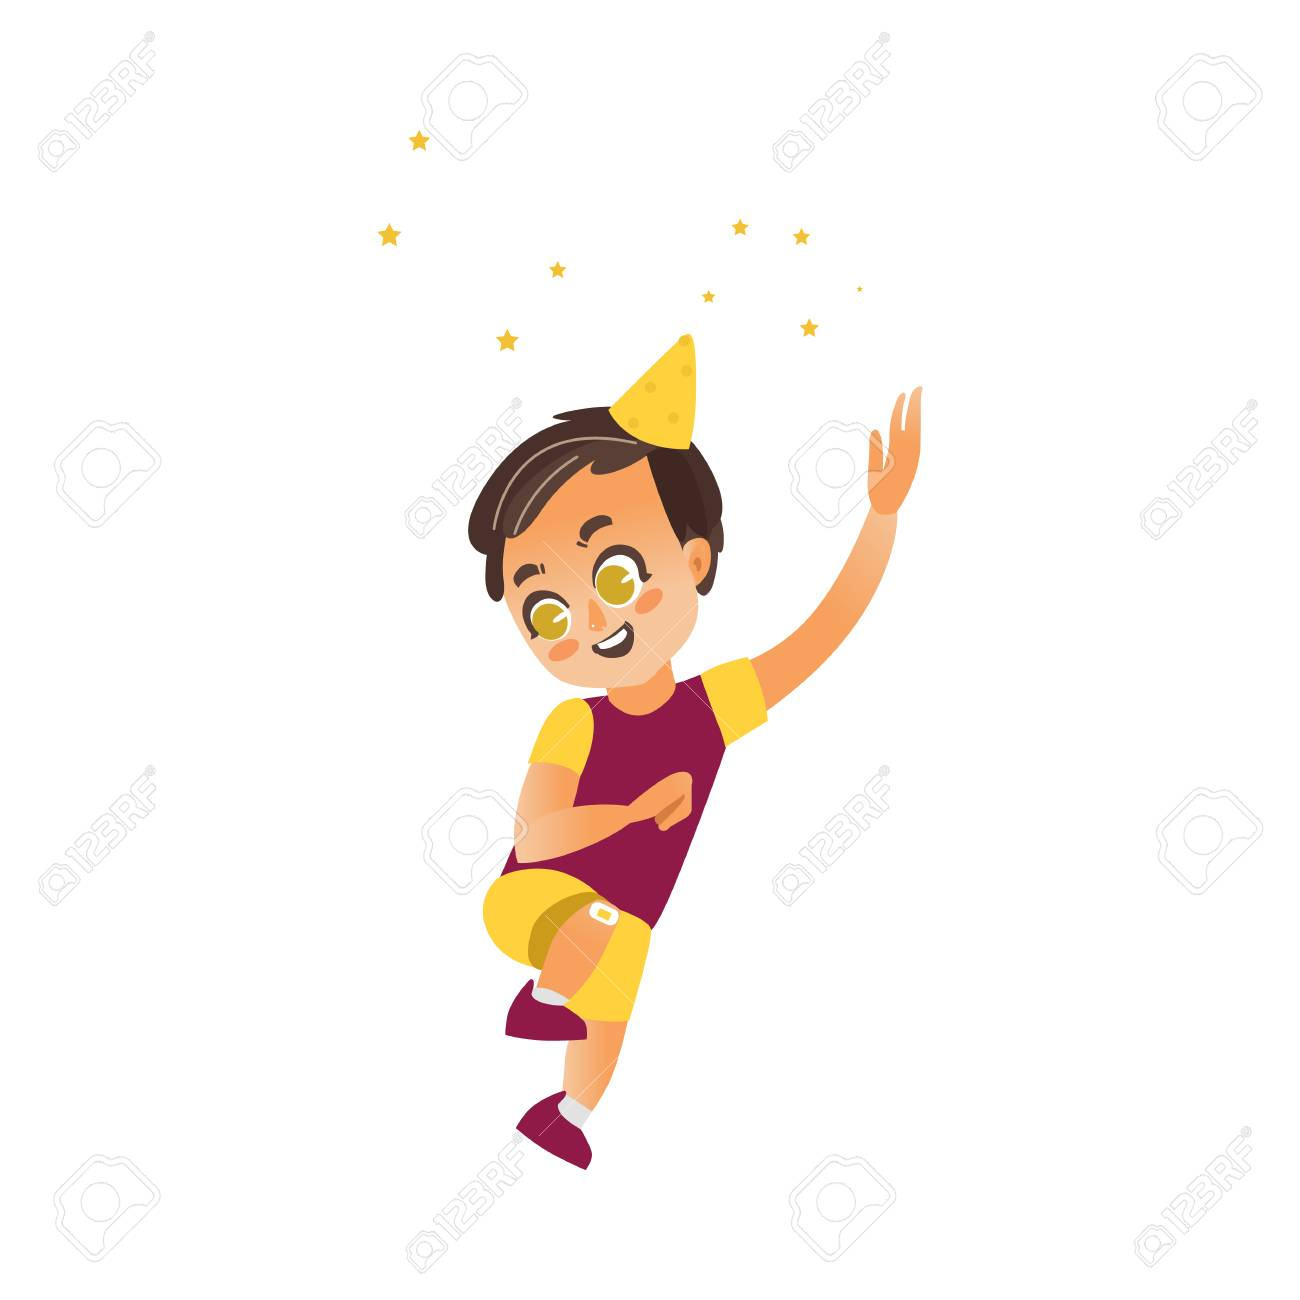 Vector vector flat cartoon boy child dancing alone in party hat throwing confetti smiling little dancer male character isolated illustration on a white